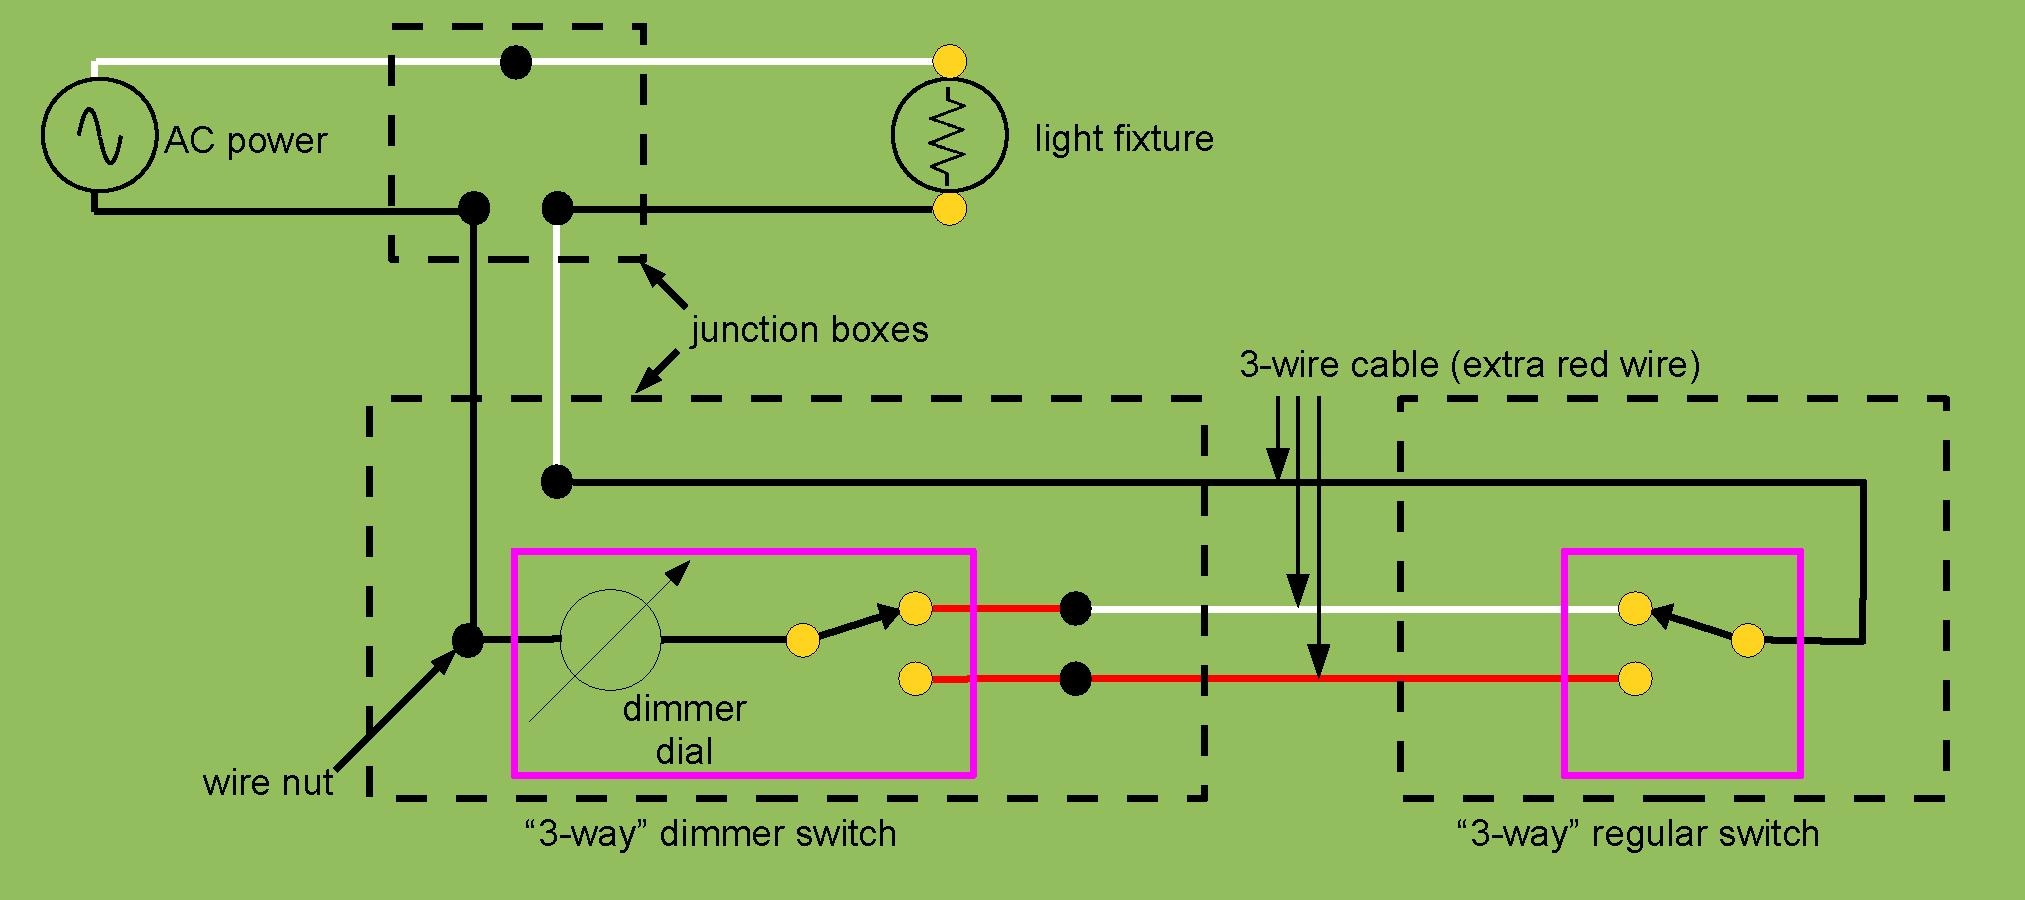 wiring diagram 3 way switch 2001 honda accord parts file dimmer pdf wikimedia commons